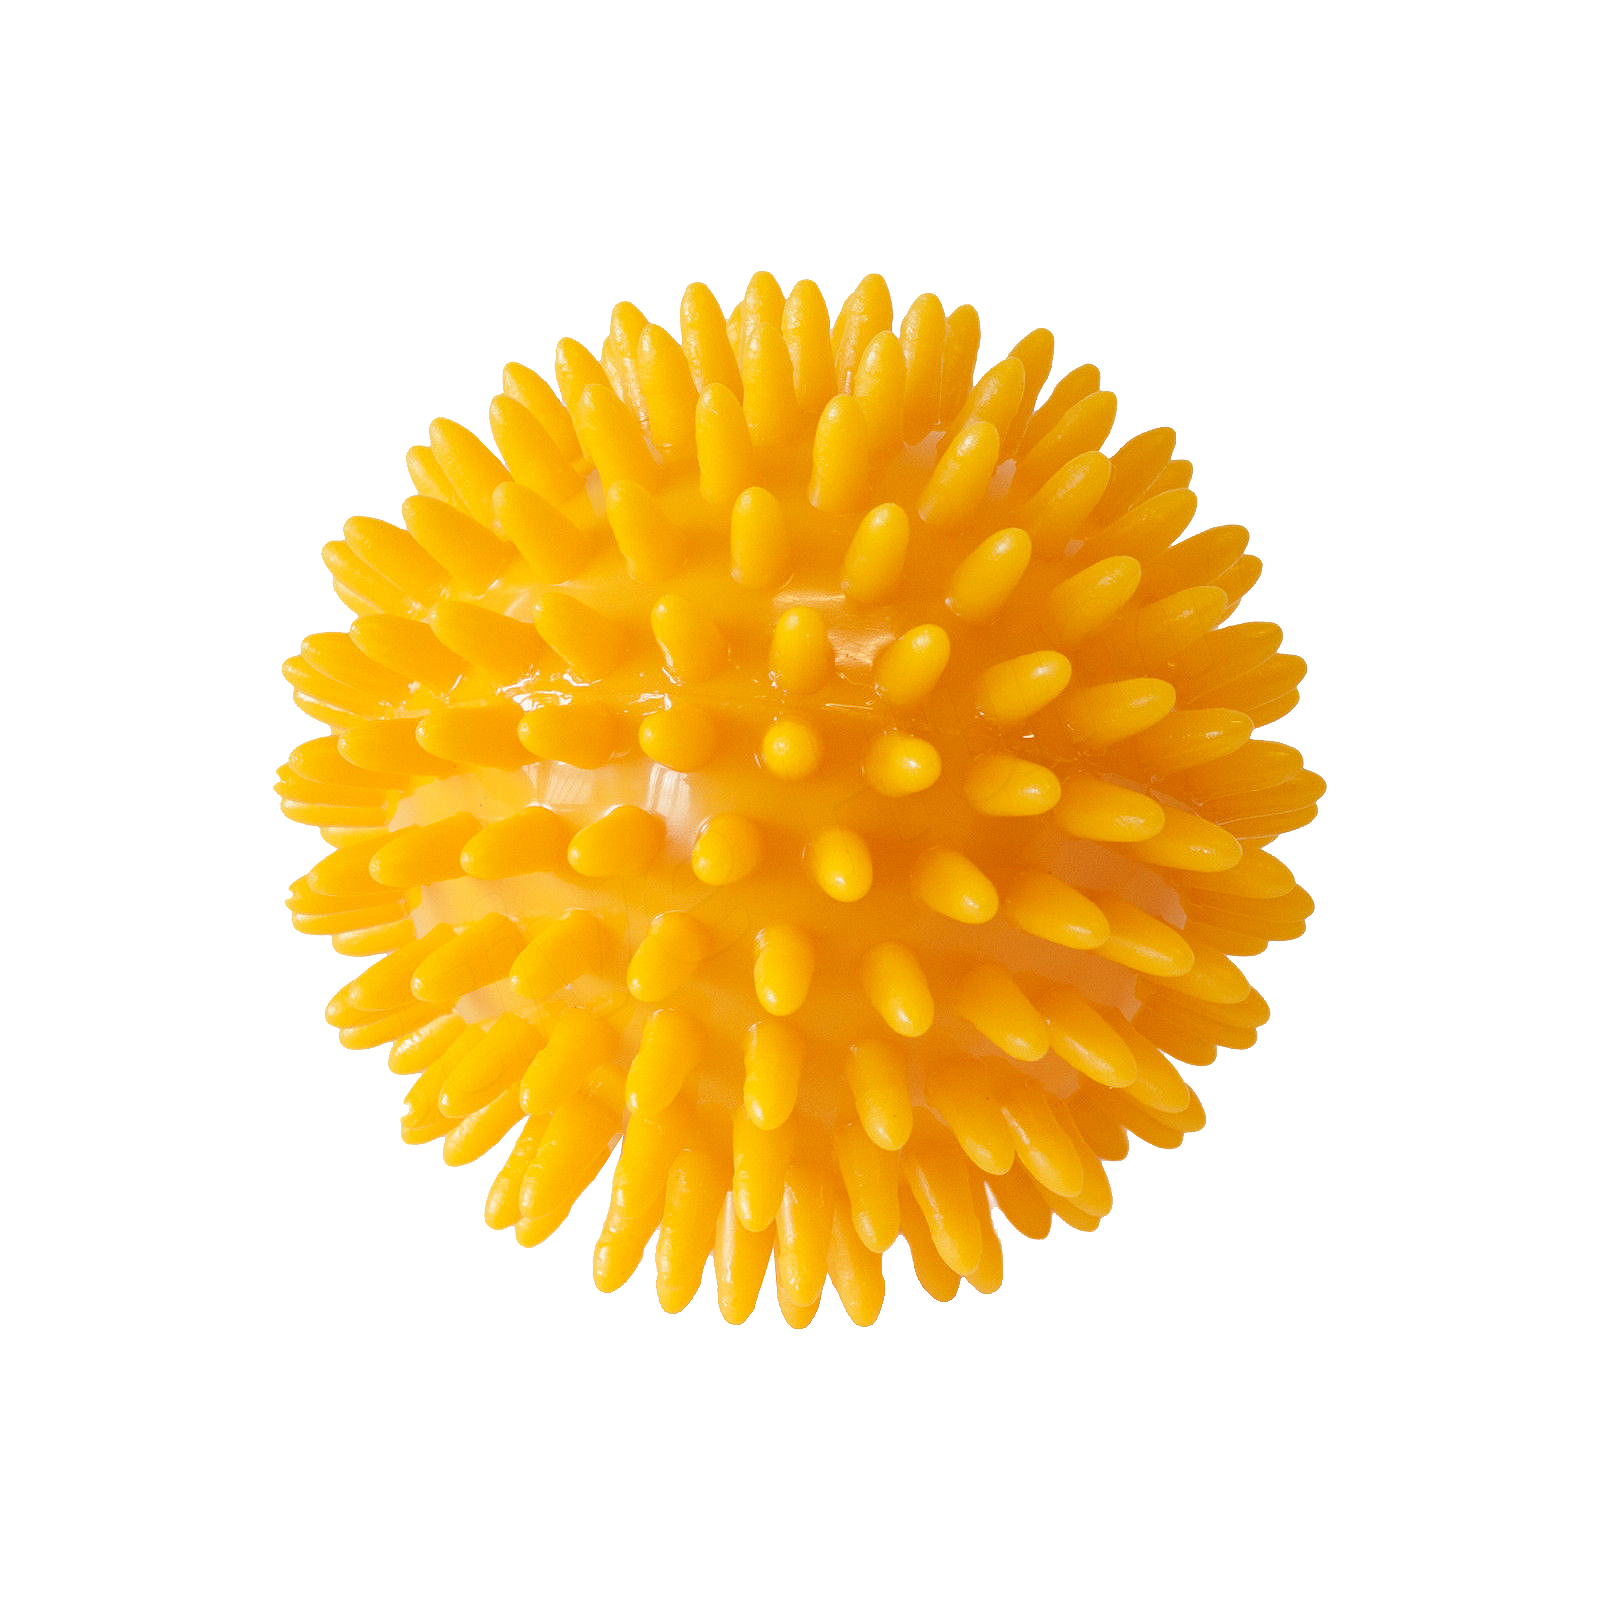 Yoga Studio Spikey Massage Gym Balls Spiky Yoga Stress